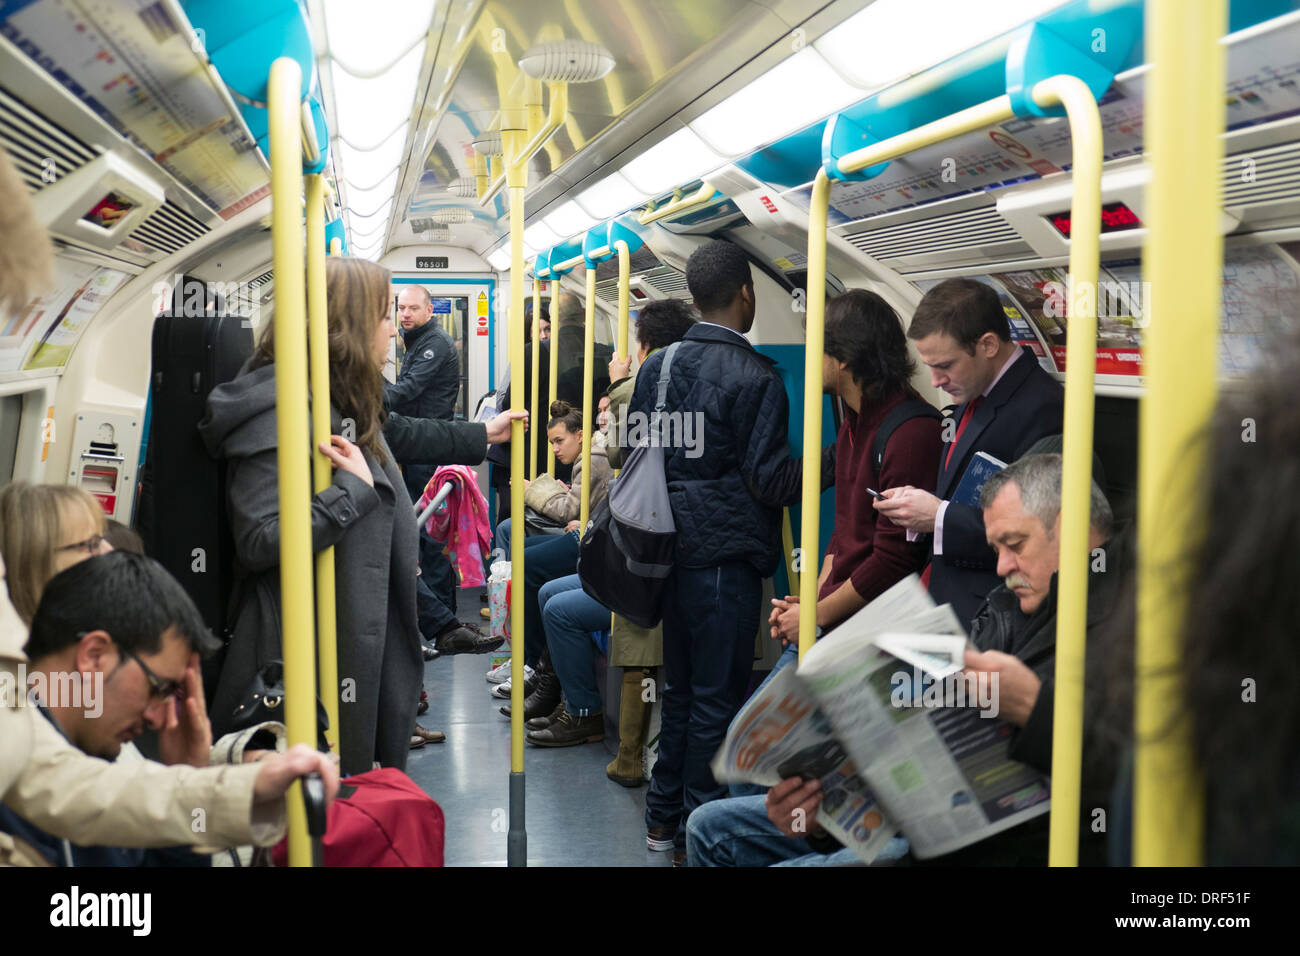 Commuters on the London Underground, London - Stock Image